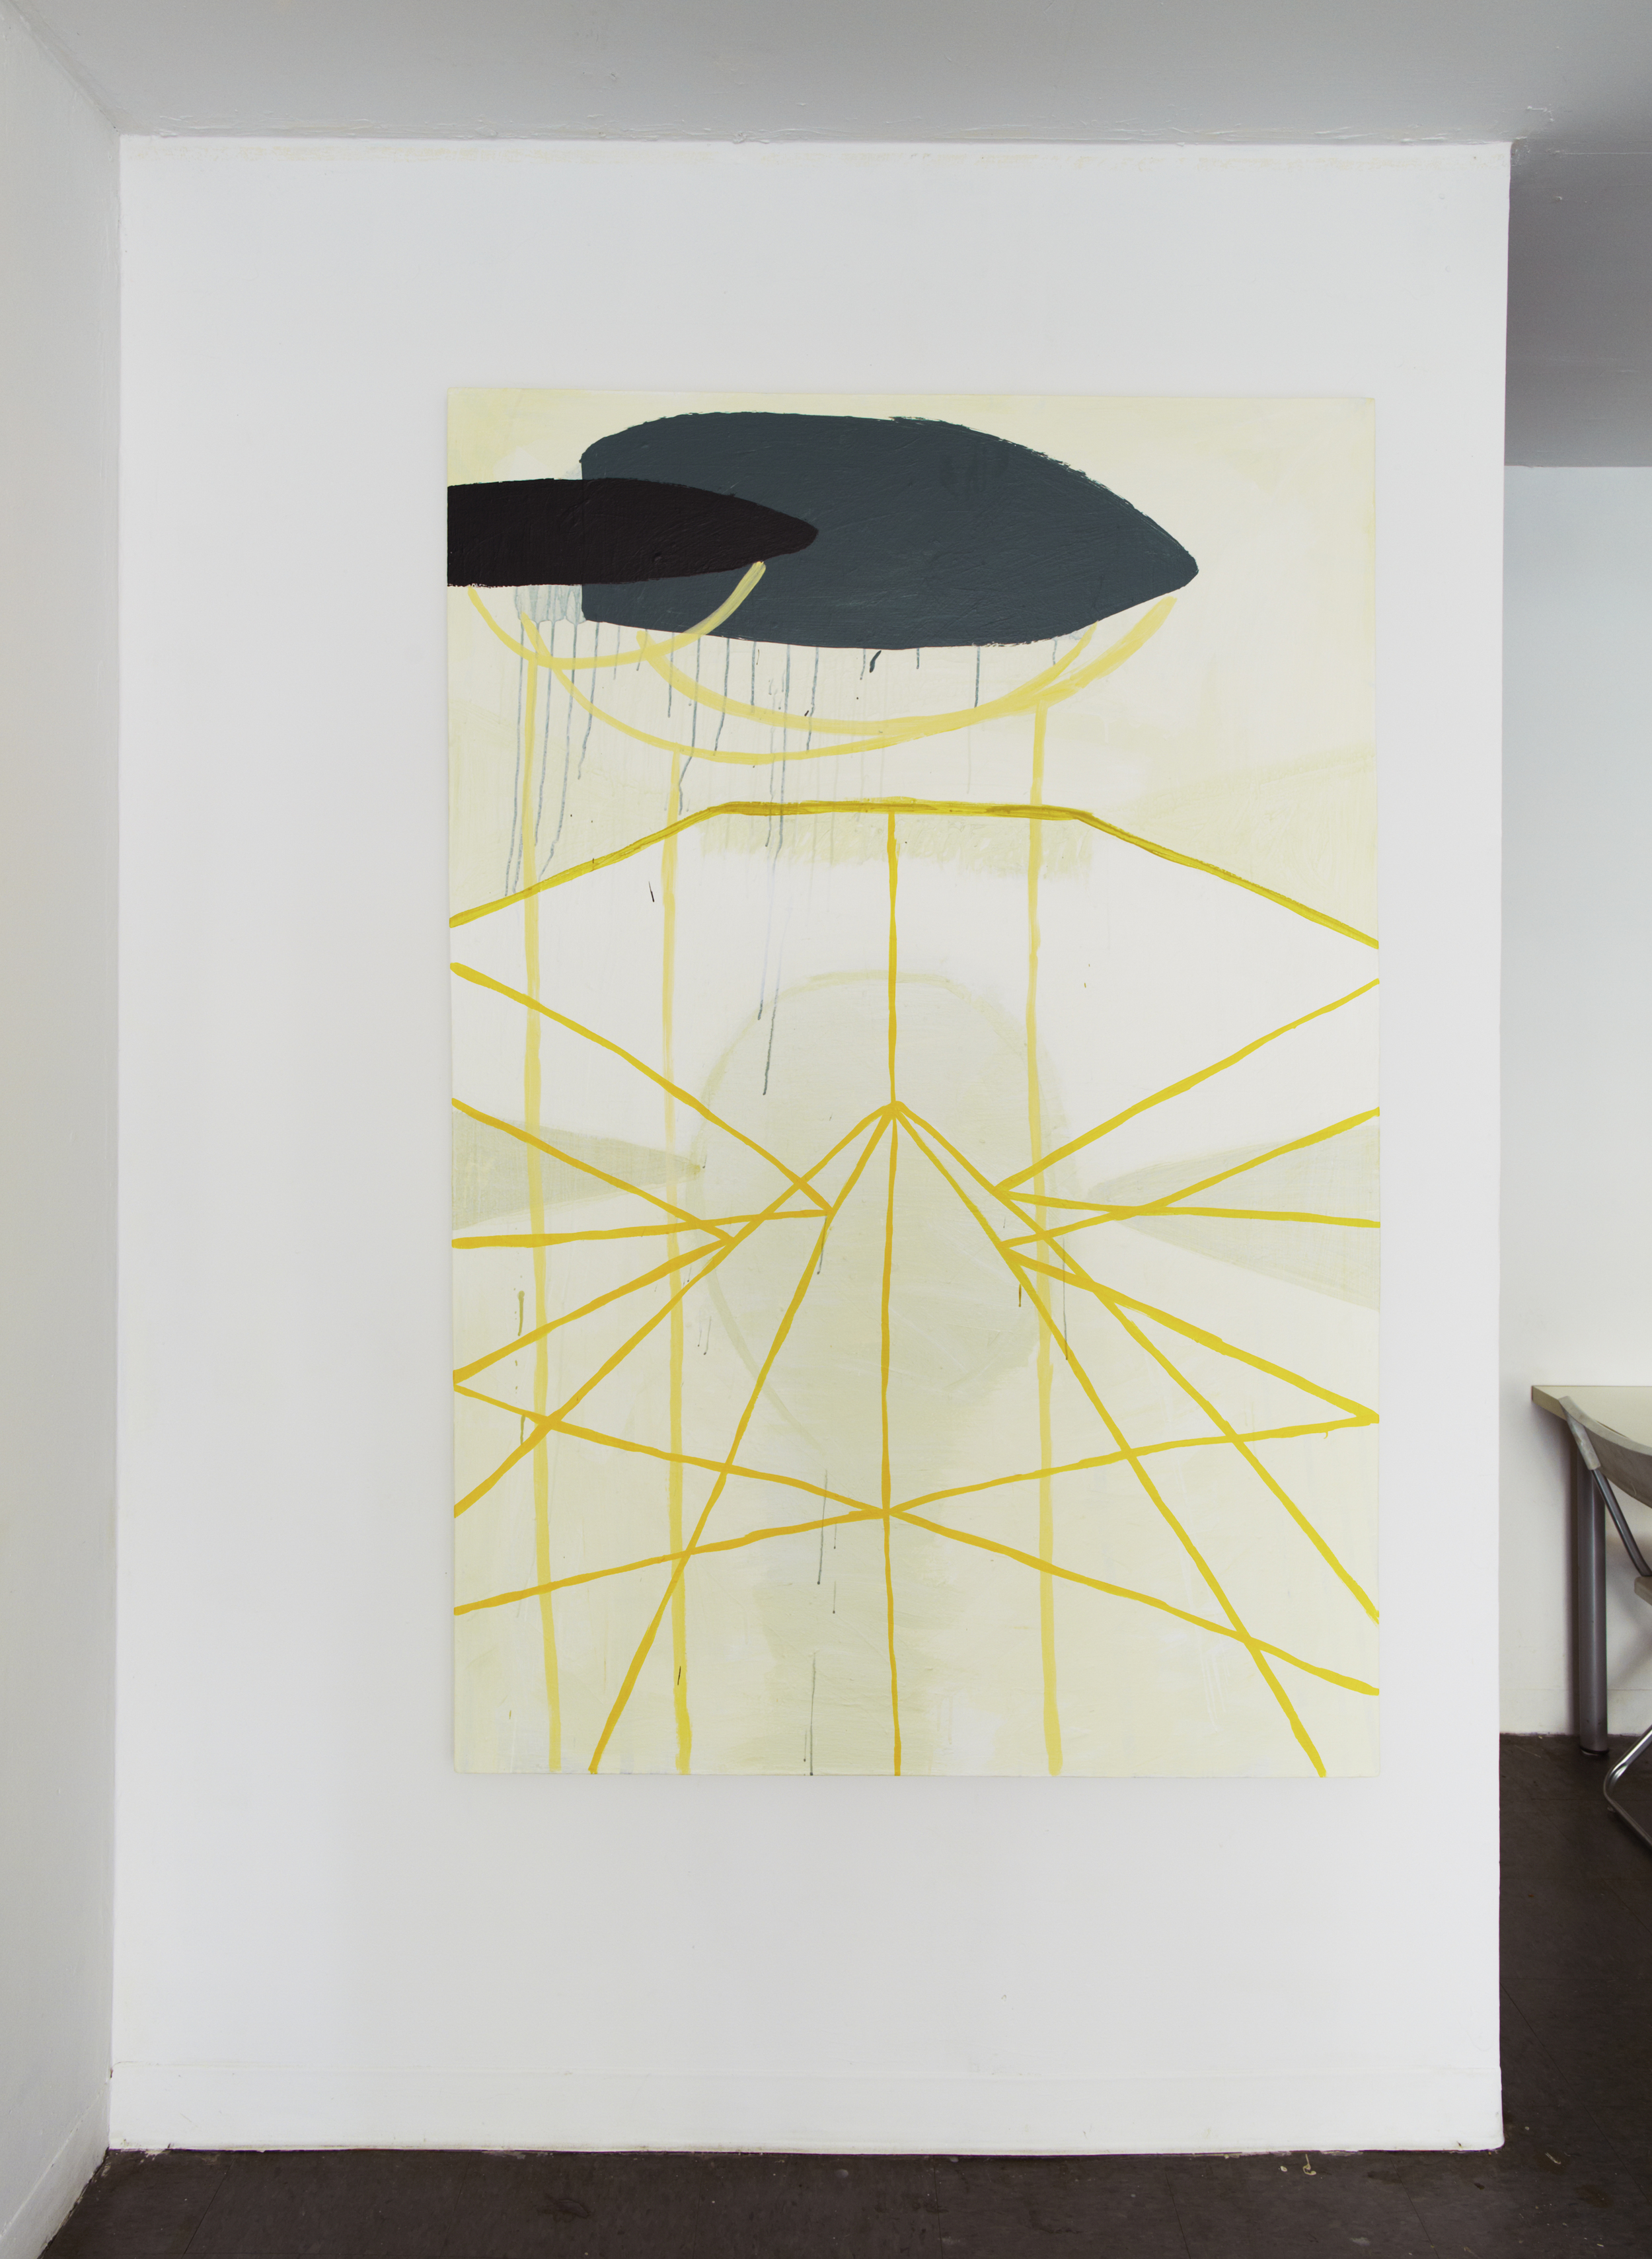 Ky Anderson -  Cloud Weight  at frosch&portmann, NY, NY 2013